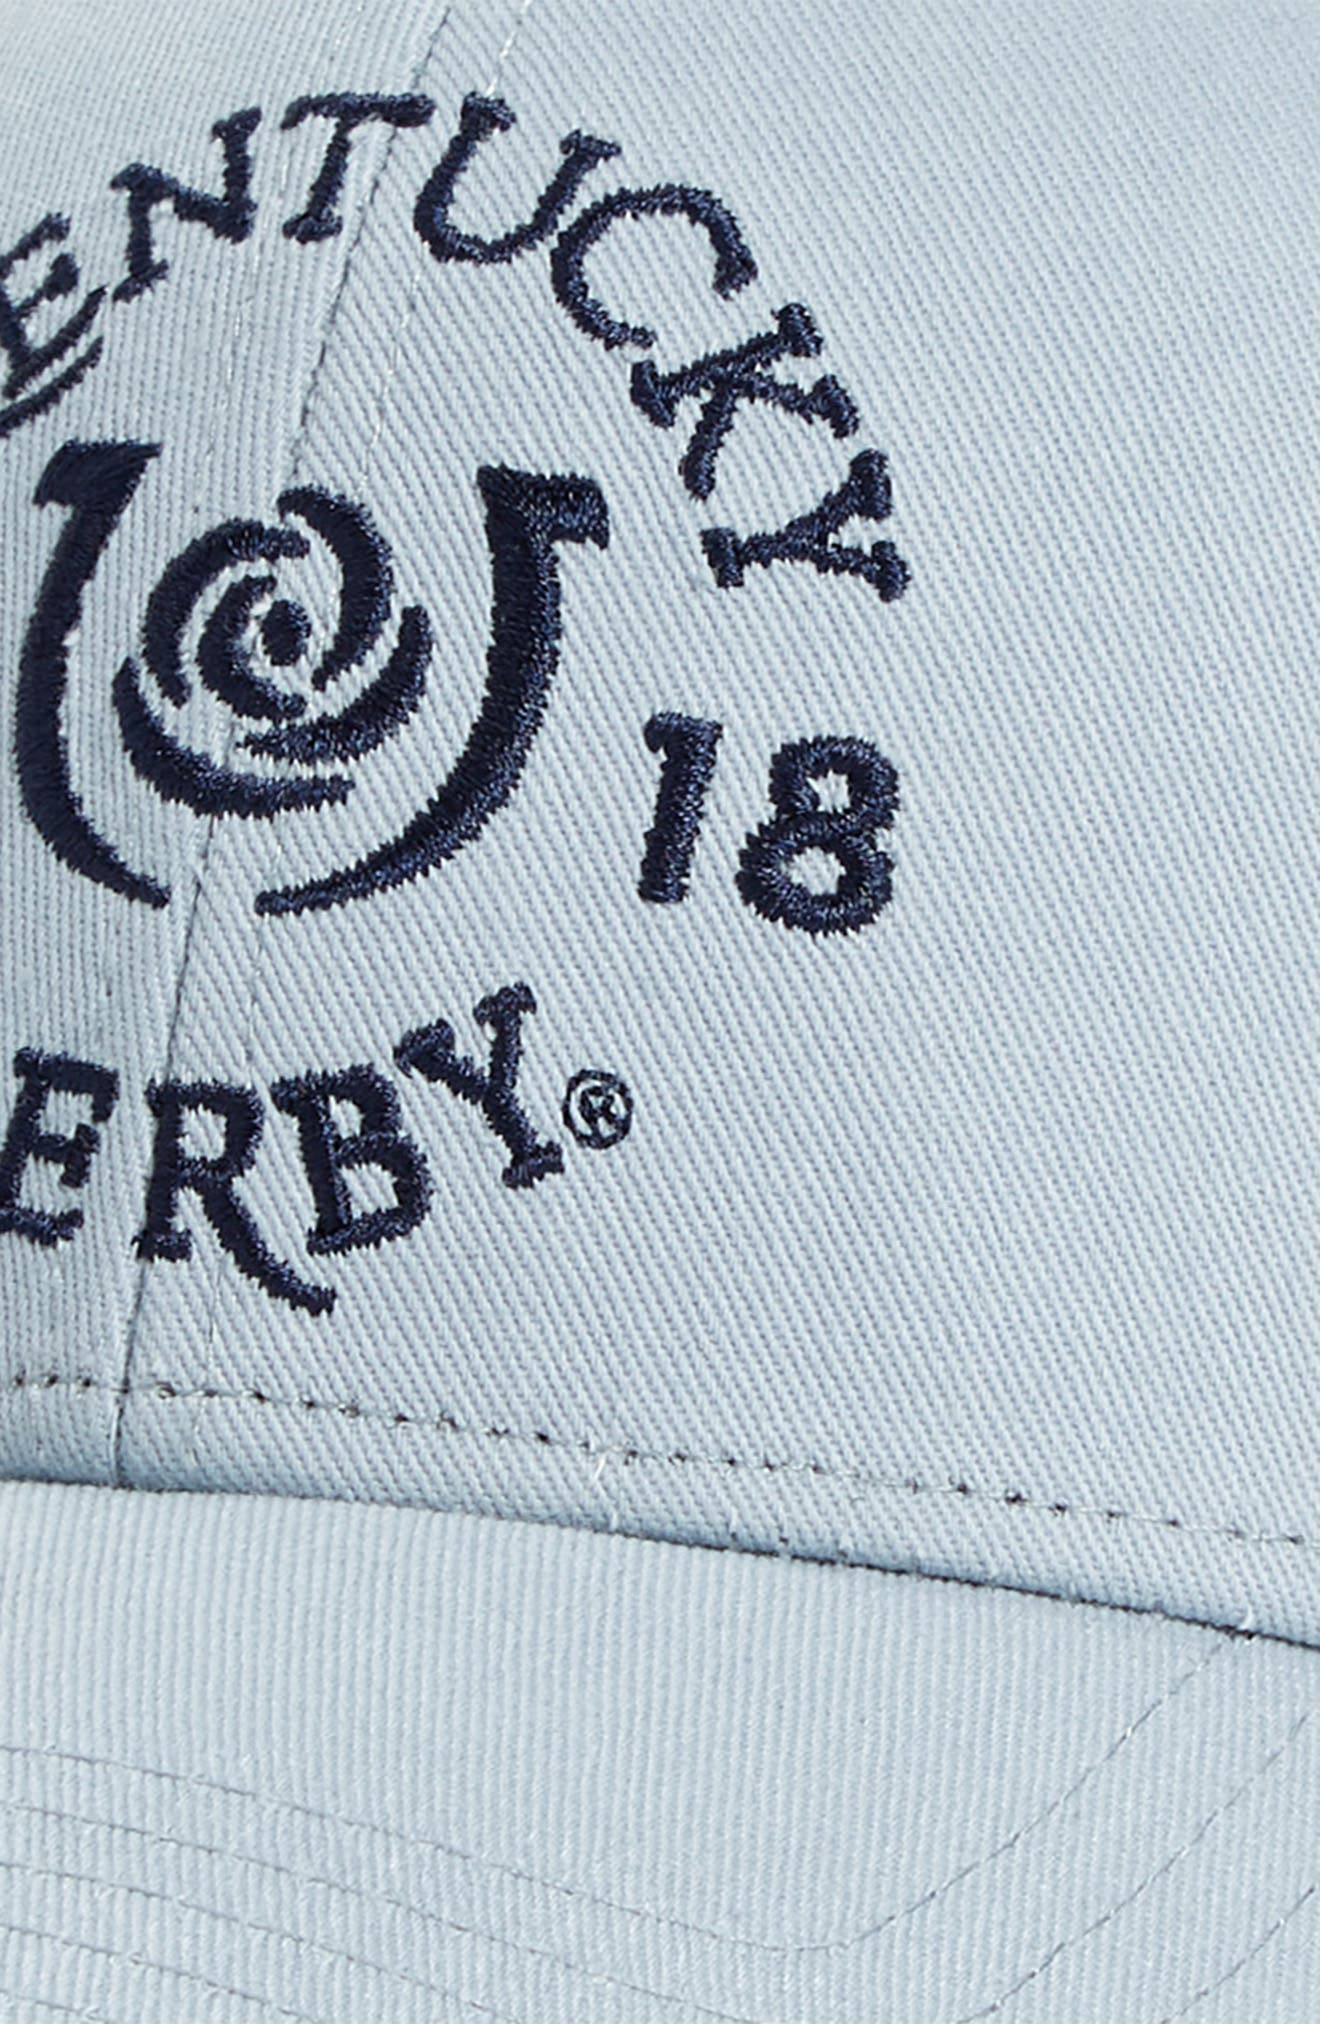 2018 Kentucky Derby<sup>®</sup> Garland of Roses Ball Cap,                             Alternate thumbnail 3, color,                             Graphite